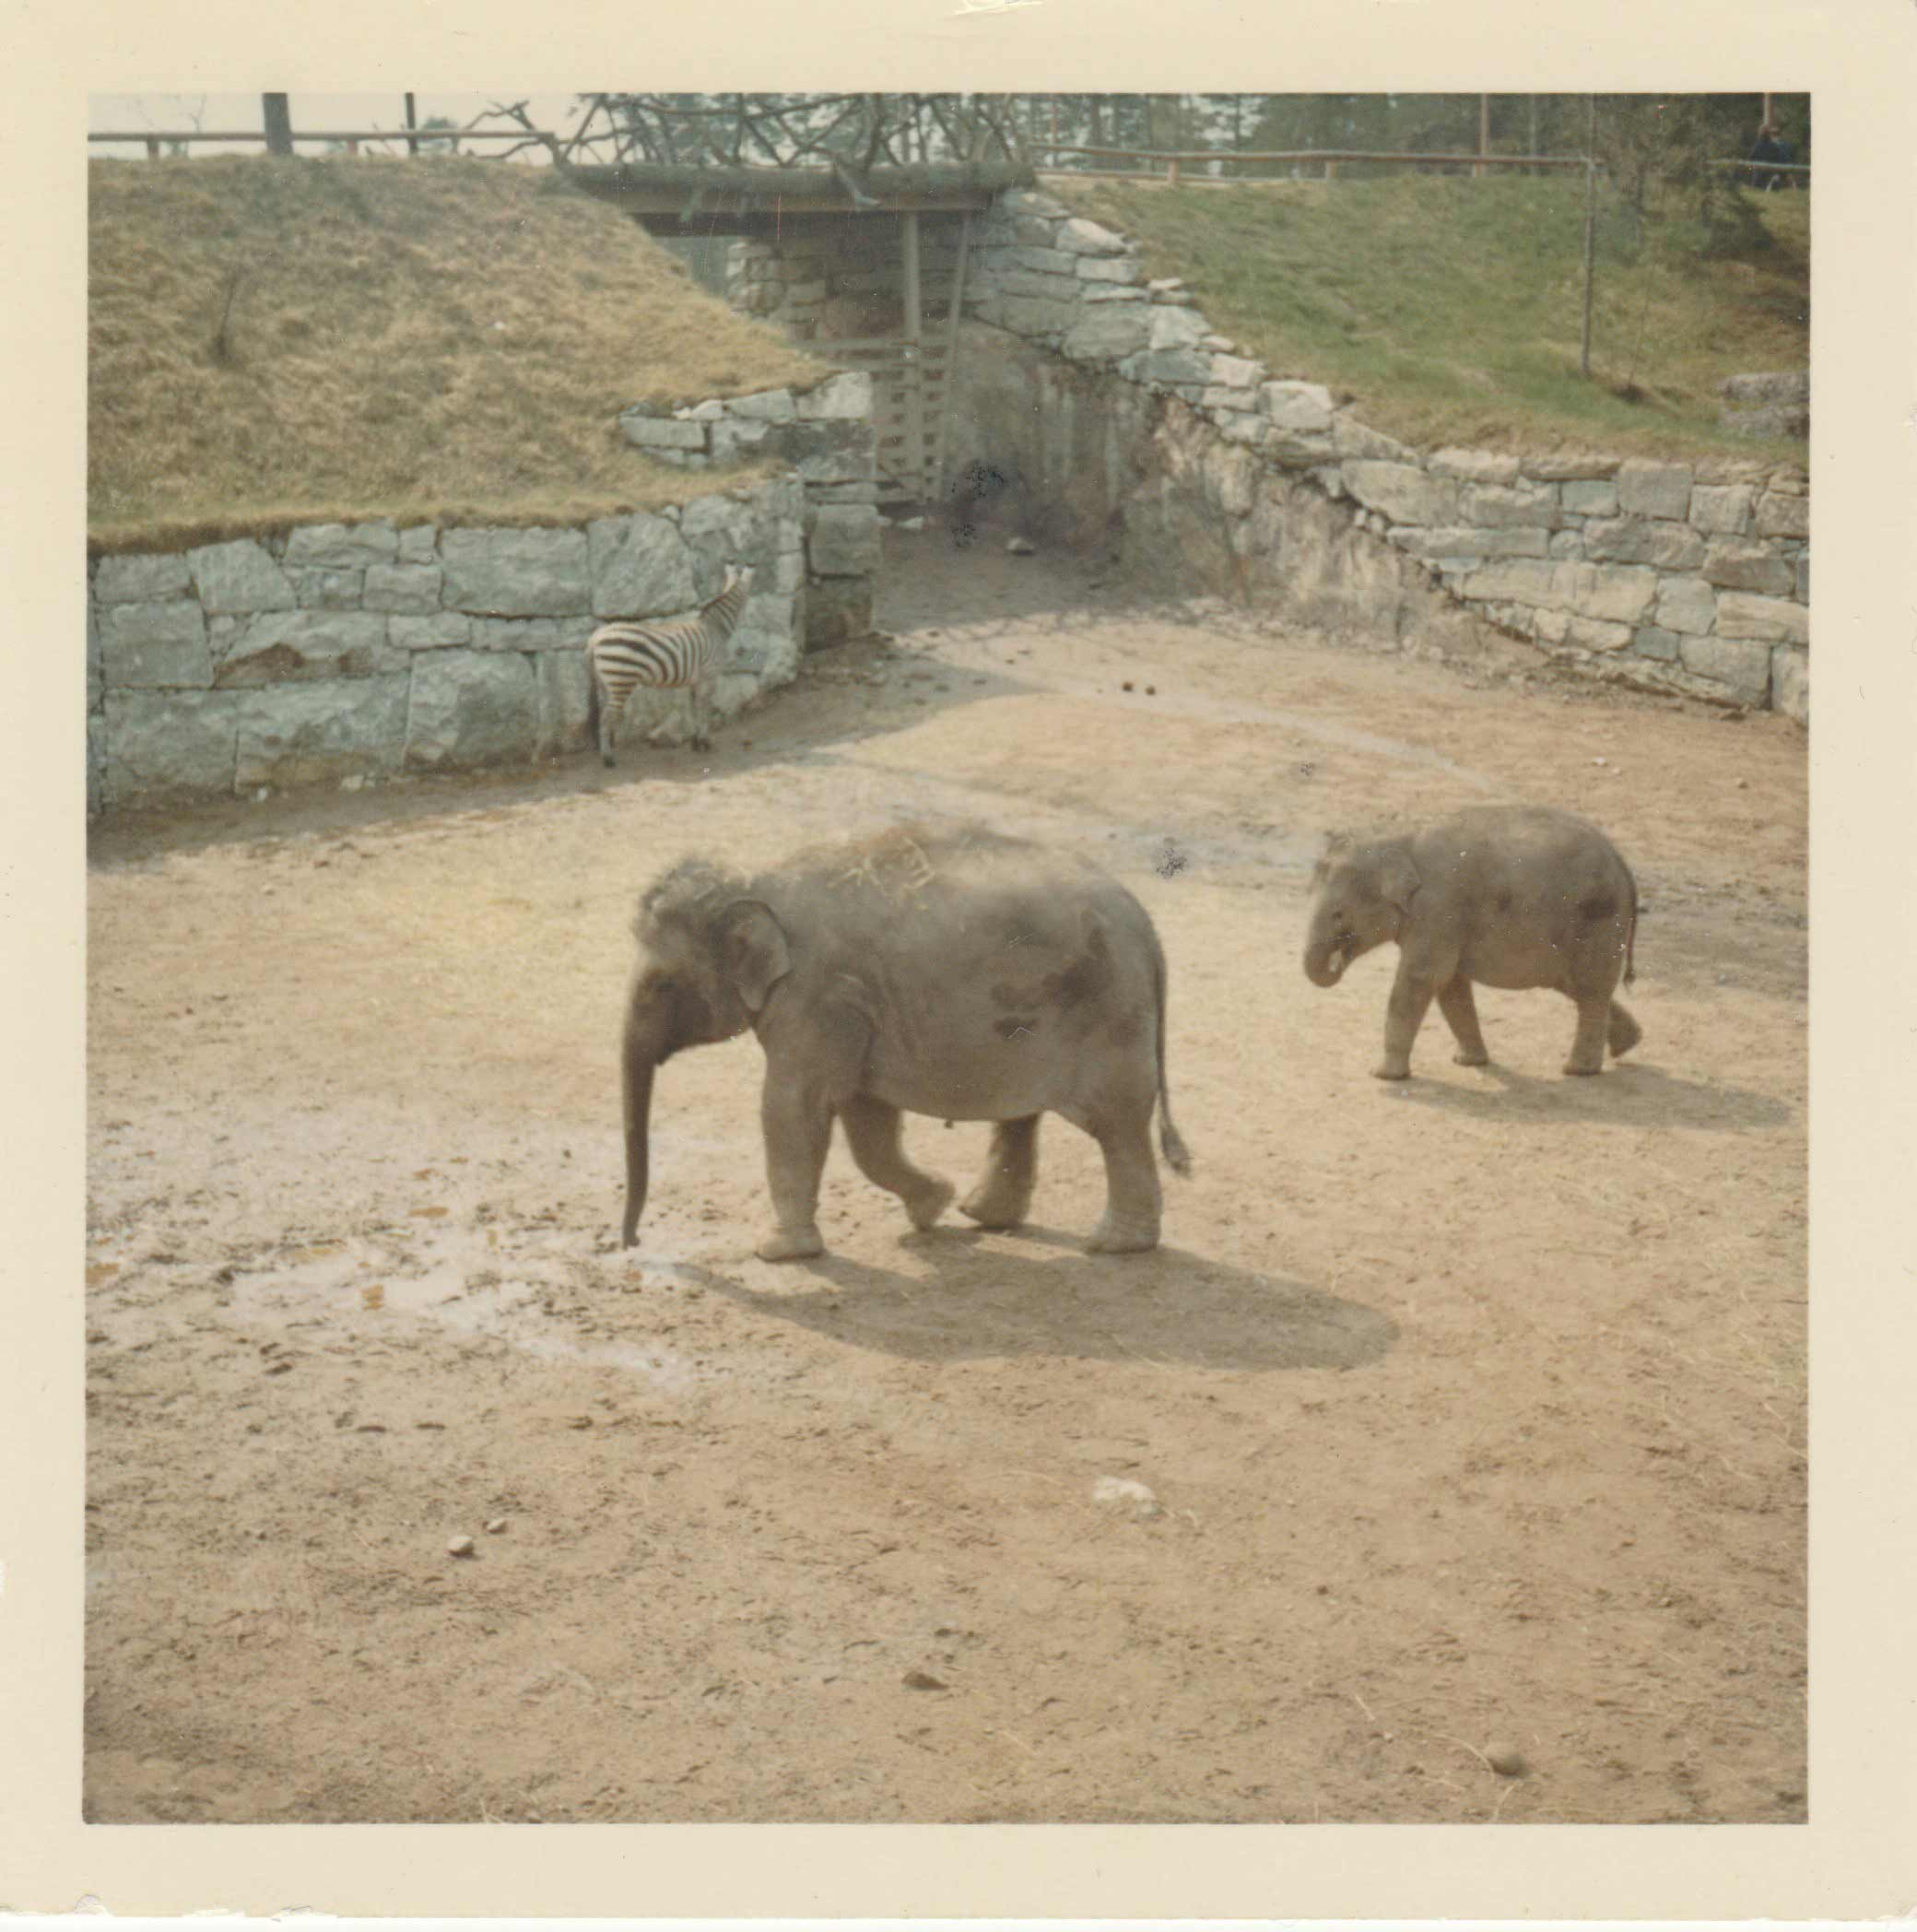 This photo was taken in May 1967 and probably Sandra/Samba?, who is standing in the front of the smaller, younger elephant, which is probably Donkey.Photo: Erland Wadsten, 1967